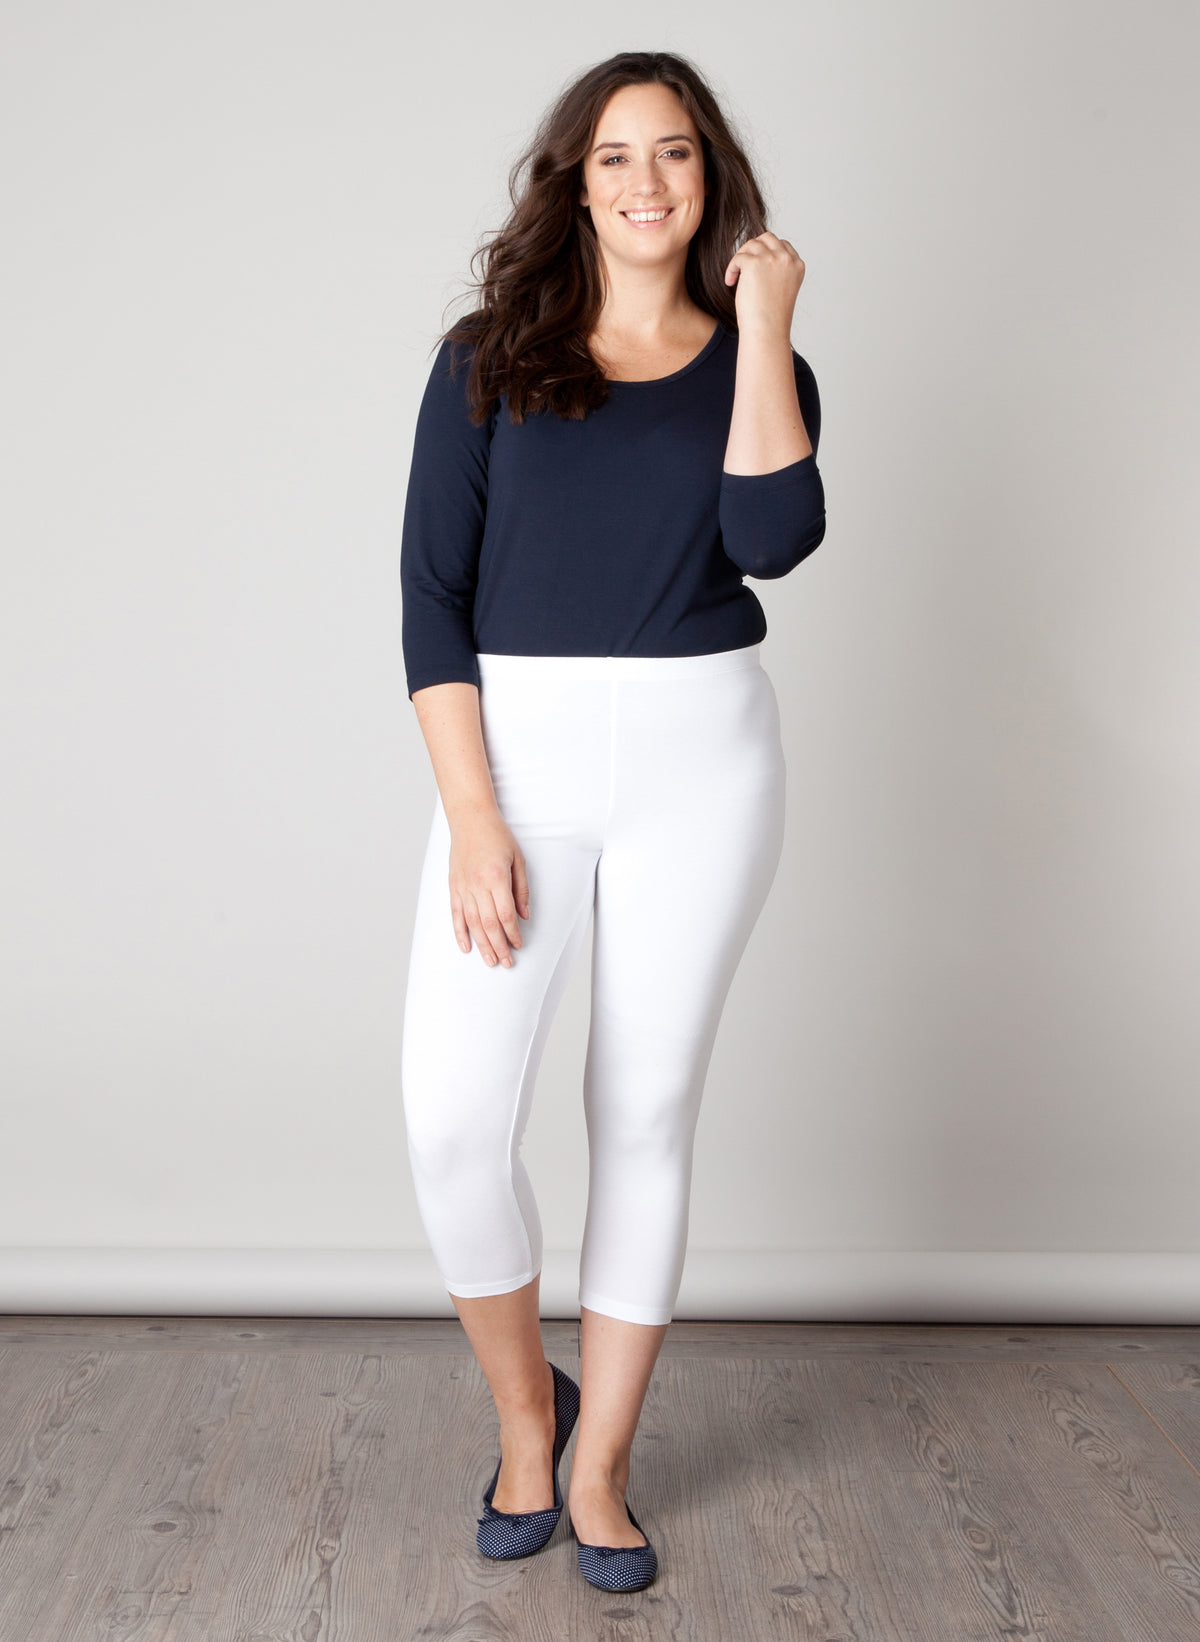 YestA - Audrey(Xcetera) Leggings